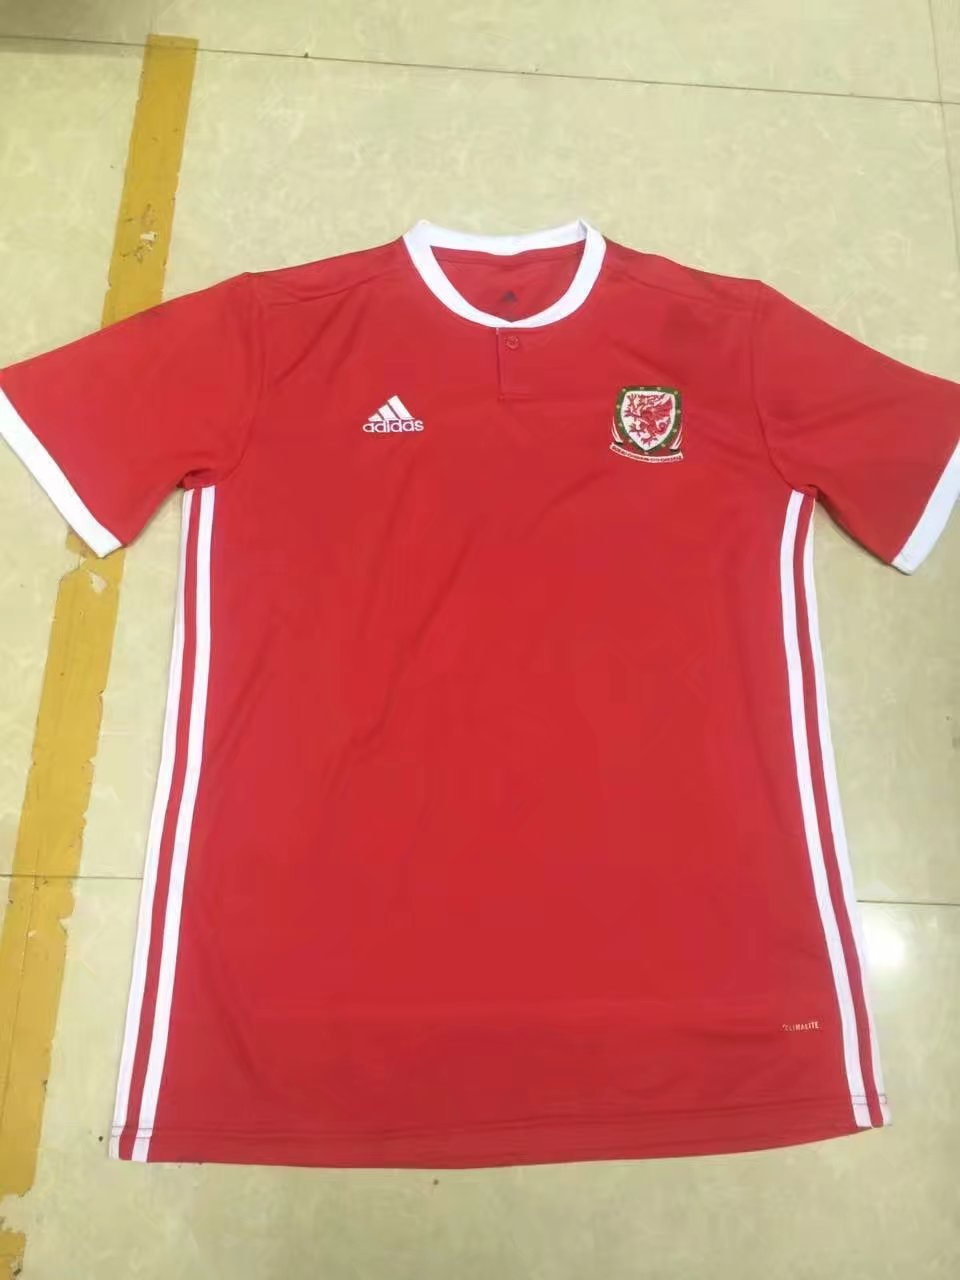 2018-world-cup-wales-home-football-jersey-6.jpg